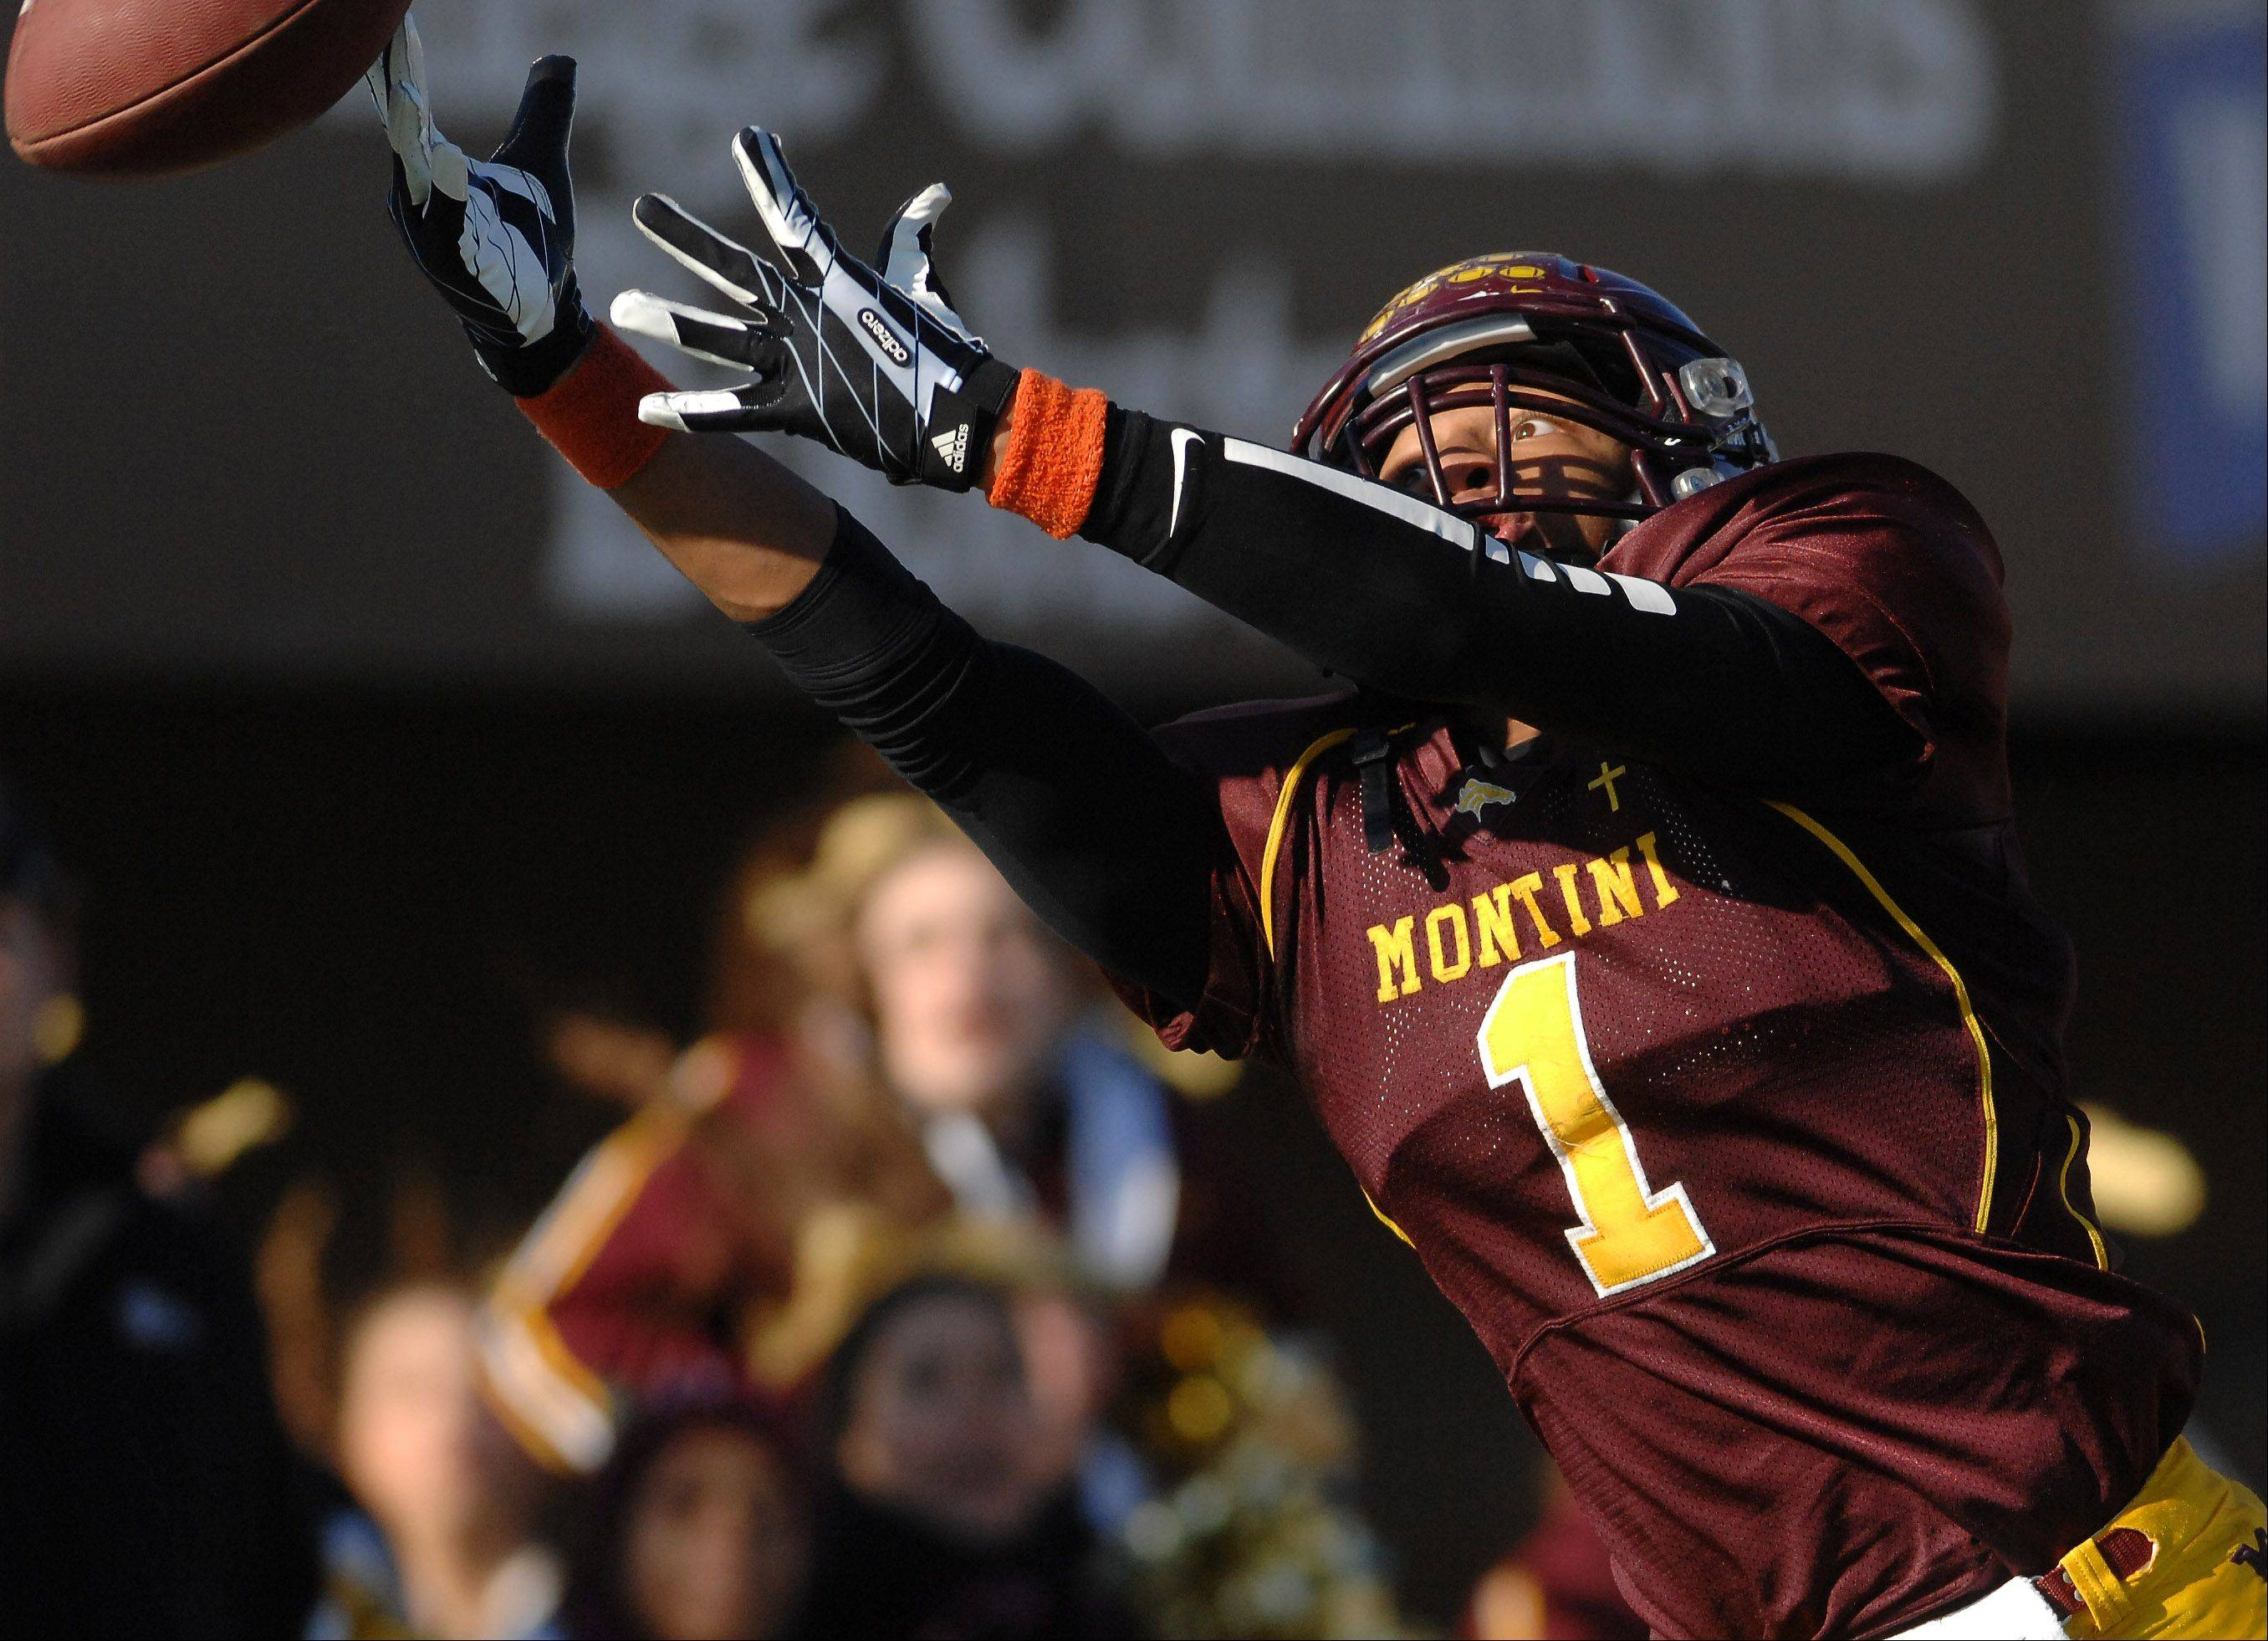 Montini's Leon Thornton III (1) just misses a catch in the end zone during Saturday's 5A championship game in DeKalb.